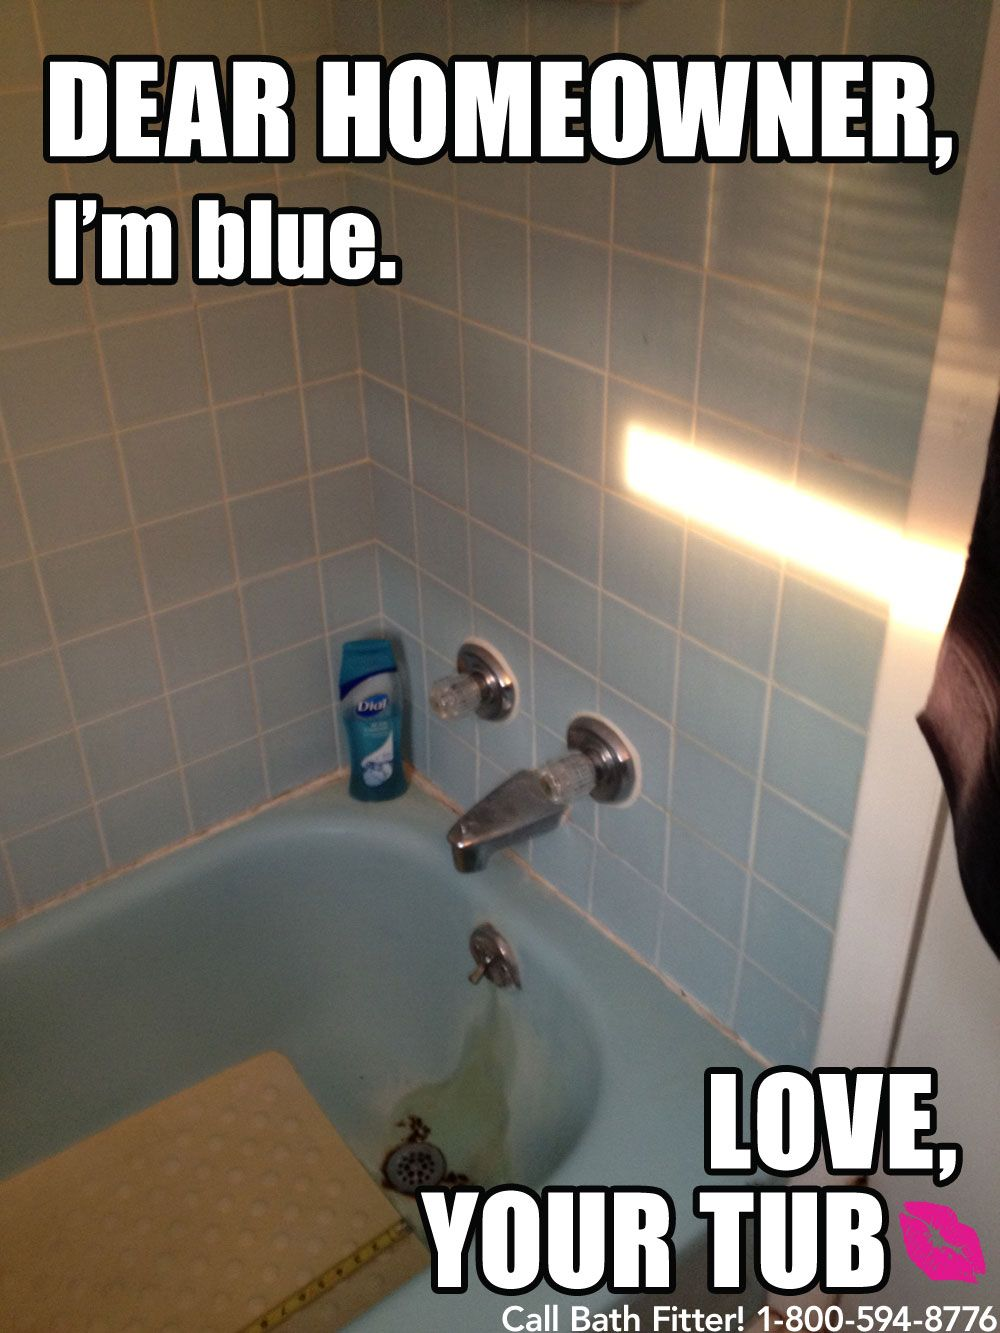 This Tub Just Wants Some Love Bathrooms Meme If Your Tub Could Talk Pinterest Bathroom